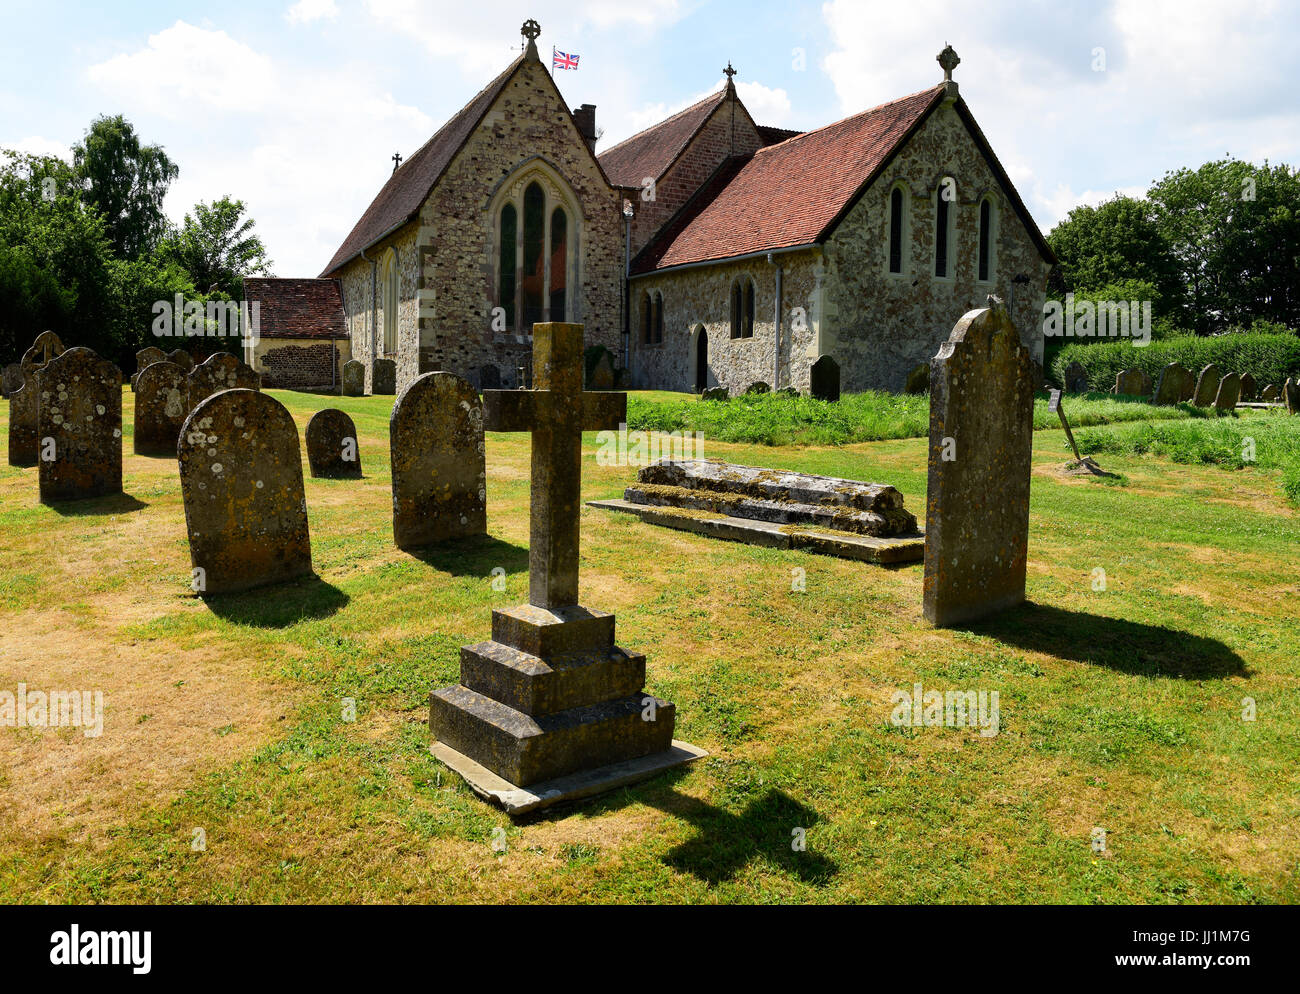 The Grade 1 listed St Mary the Virgin Church dating from the late 12th century in the village of Selborne, Hampshire, Stock Photo